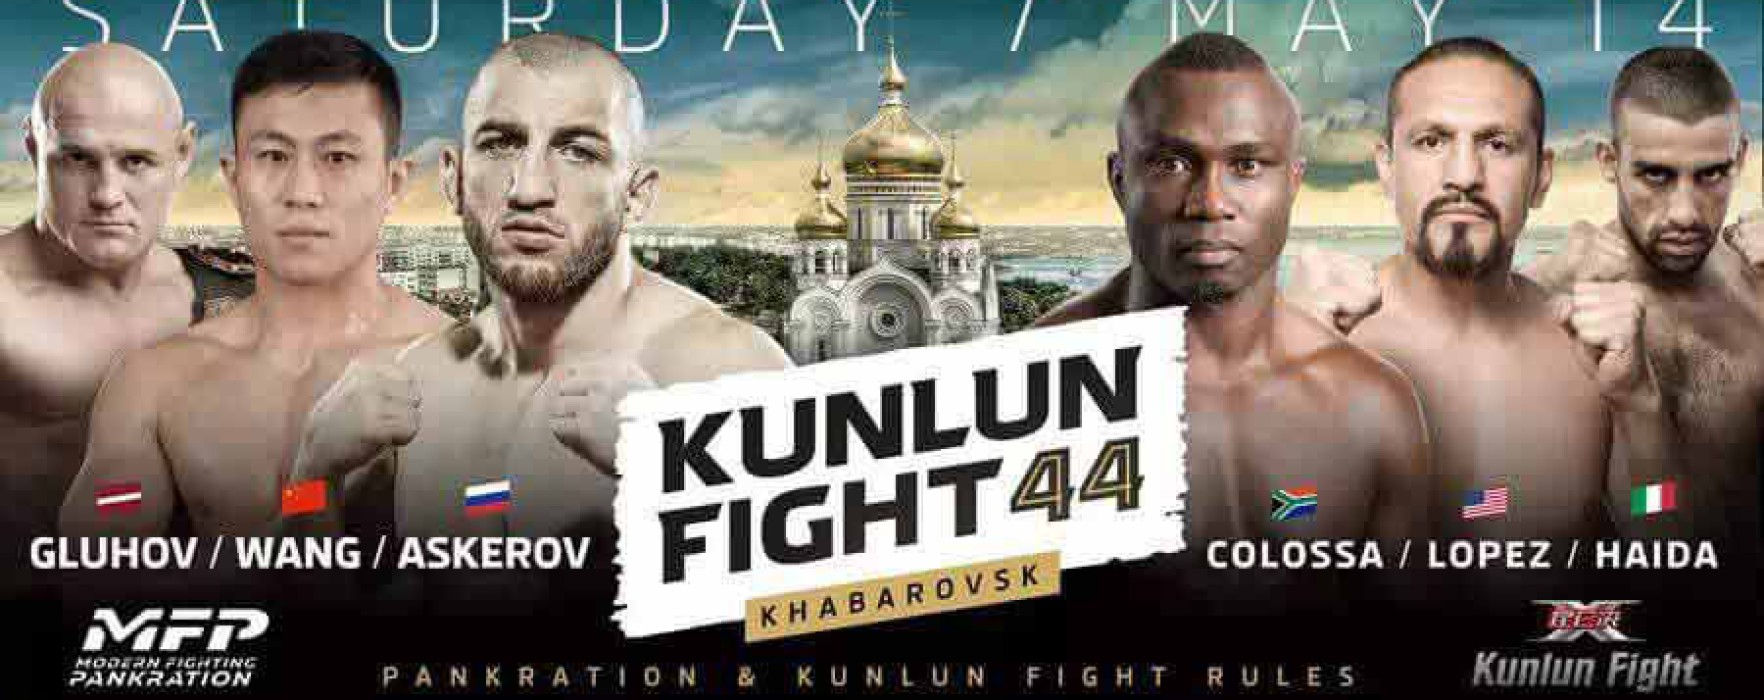 Card: Askerov, Colossa, Haida & more at Kunlun Fight 44 – Khabarovsk, Russia – 14th May 2016